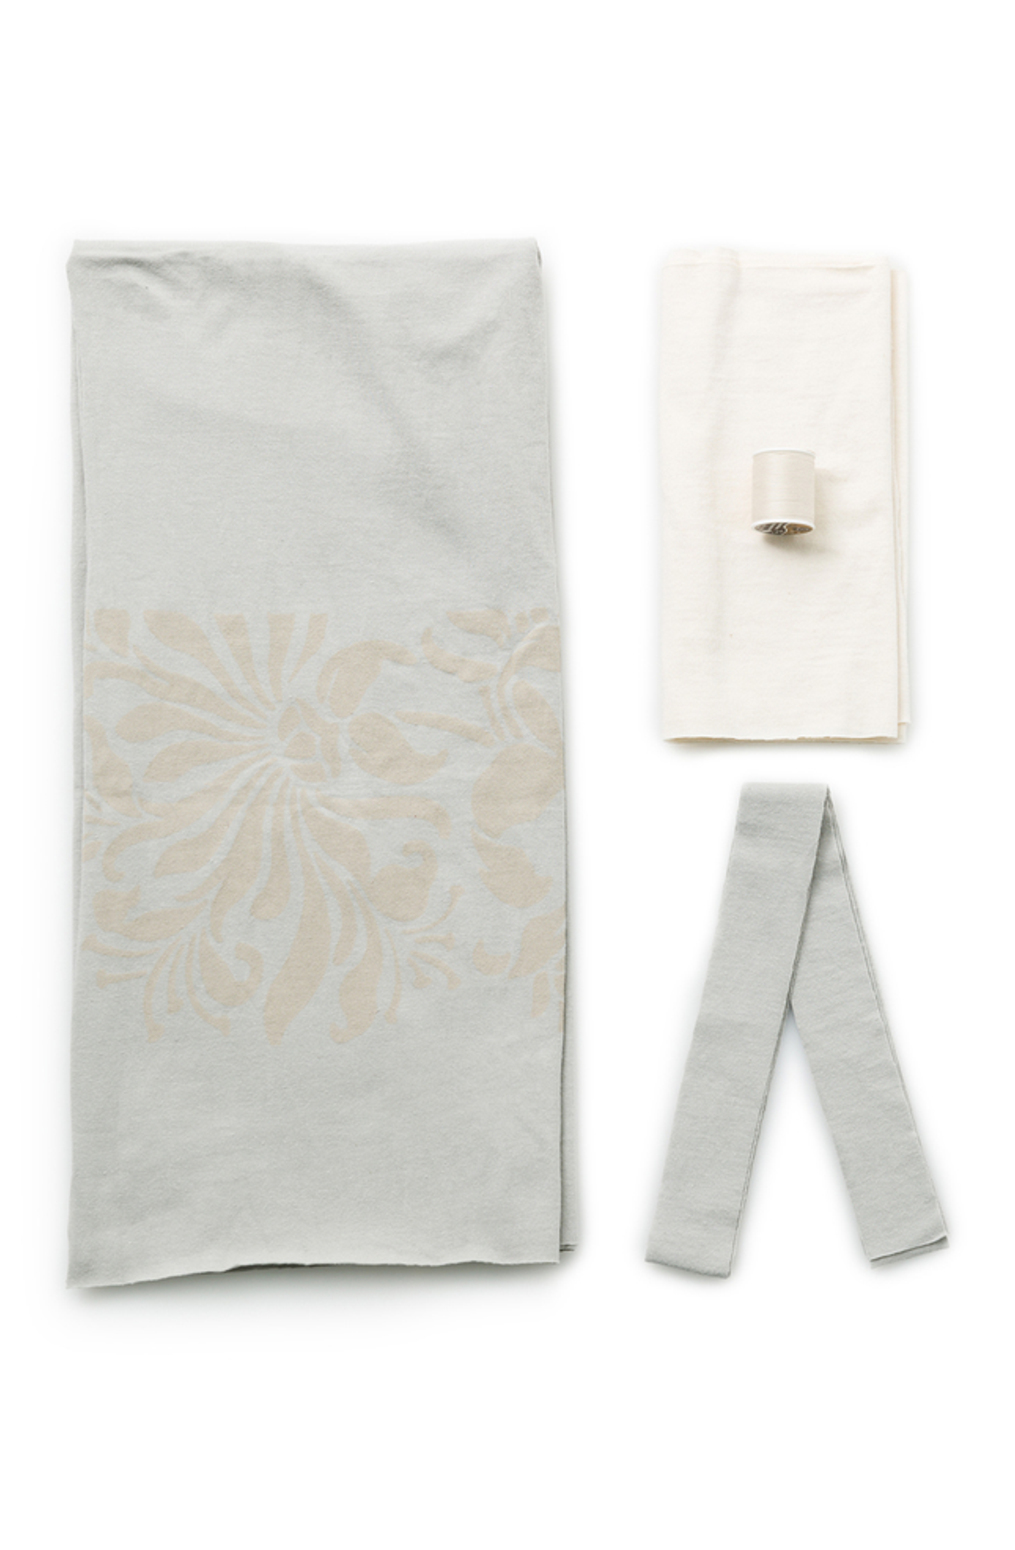 The school of making magdalena apron diy embroidery kit 1